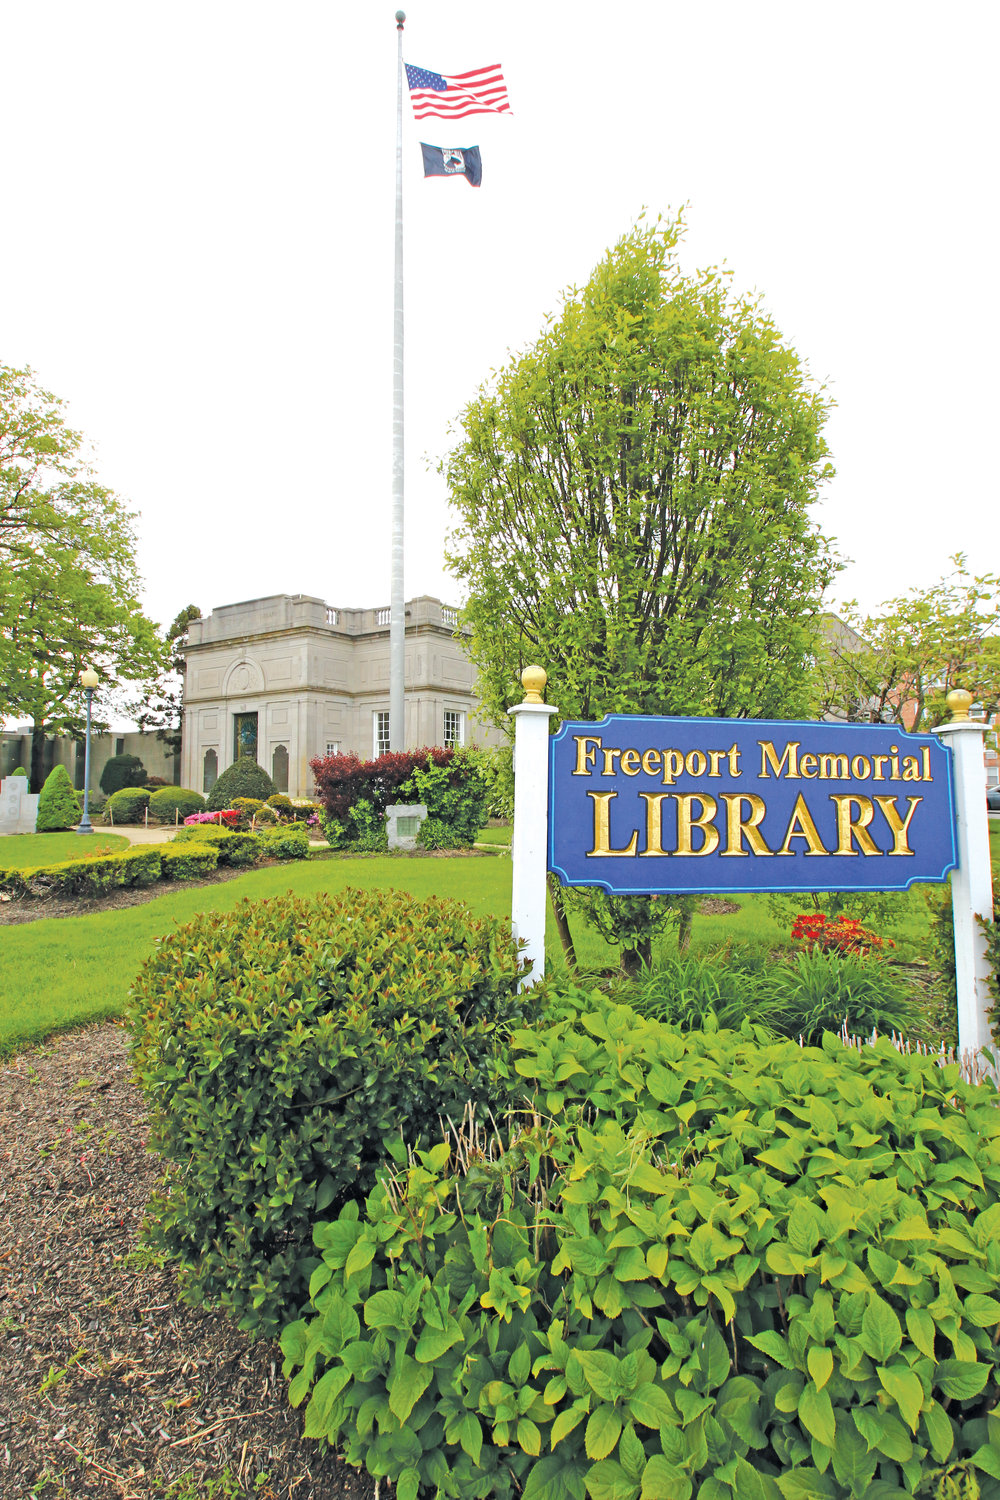 The Freeport Memorial Library offers a wide-range selection of books and hosts several events daily.